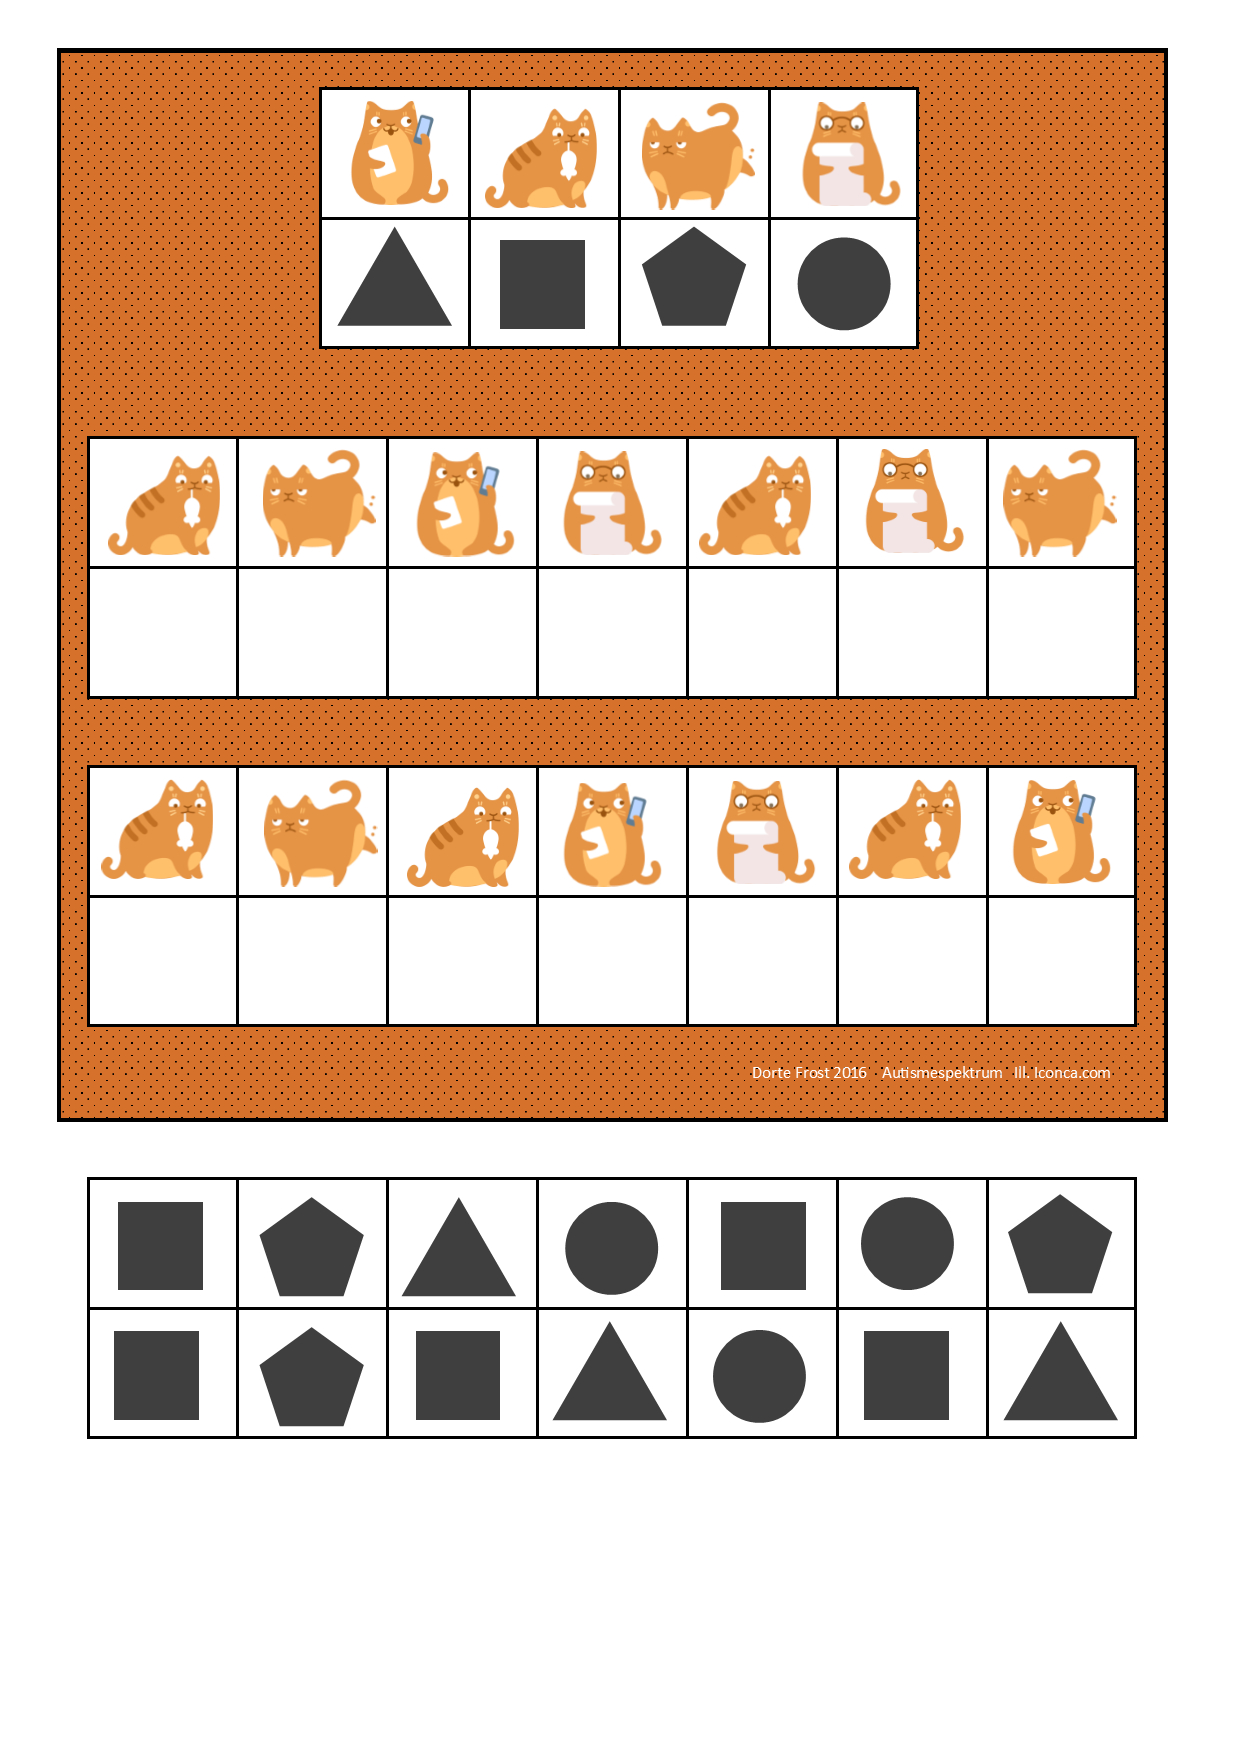 Board And Tiles For The Cat Visual Perception Game. By encequiconcerne Jeux Didactiques Maternelle